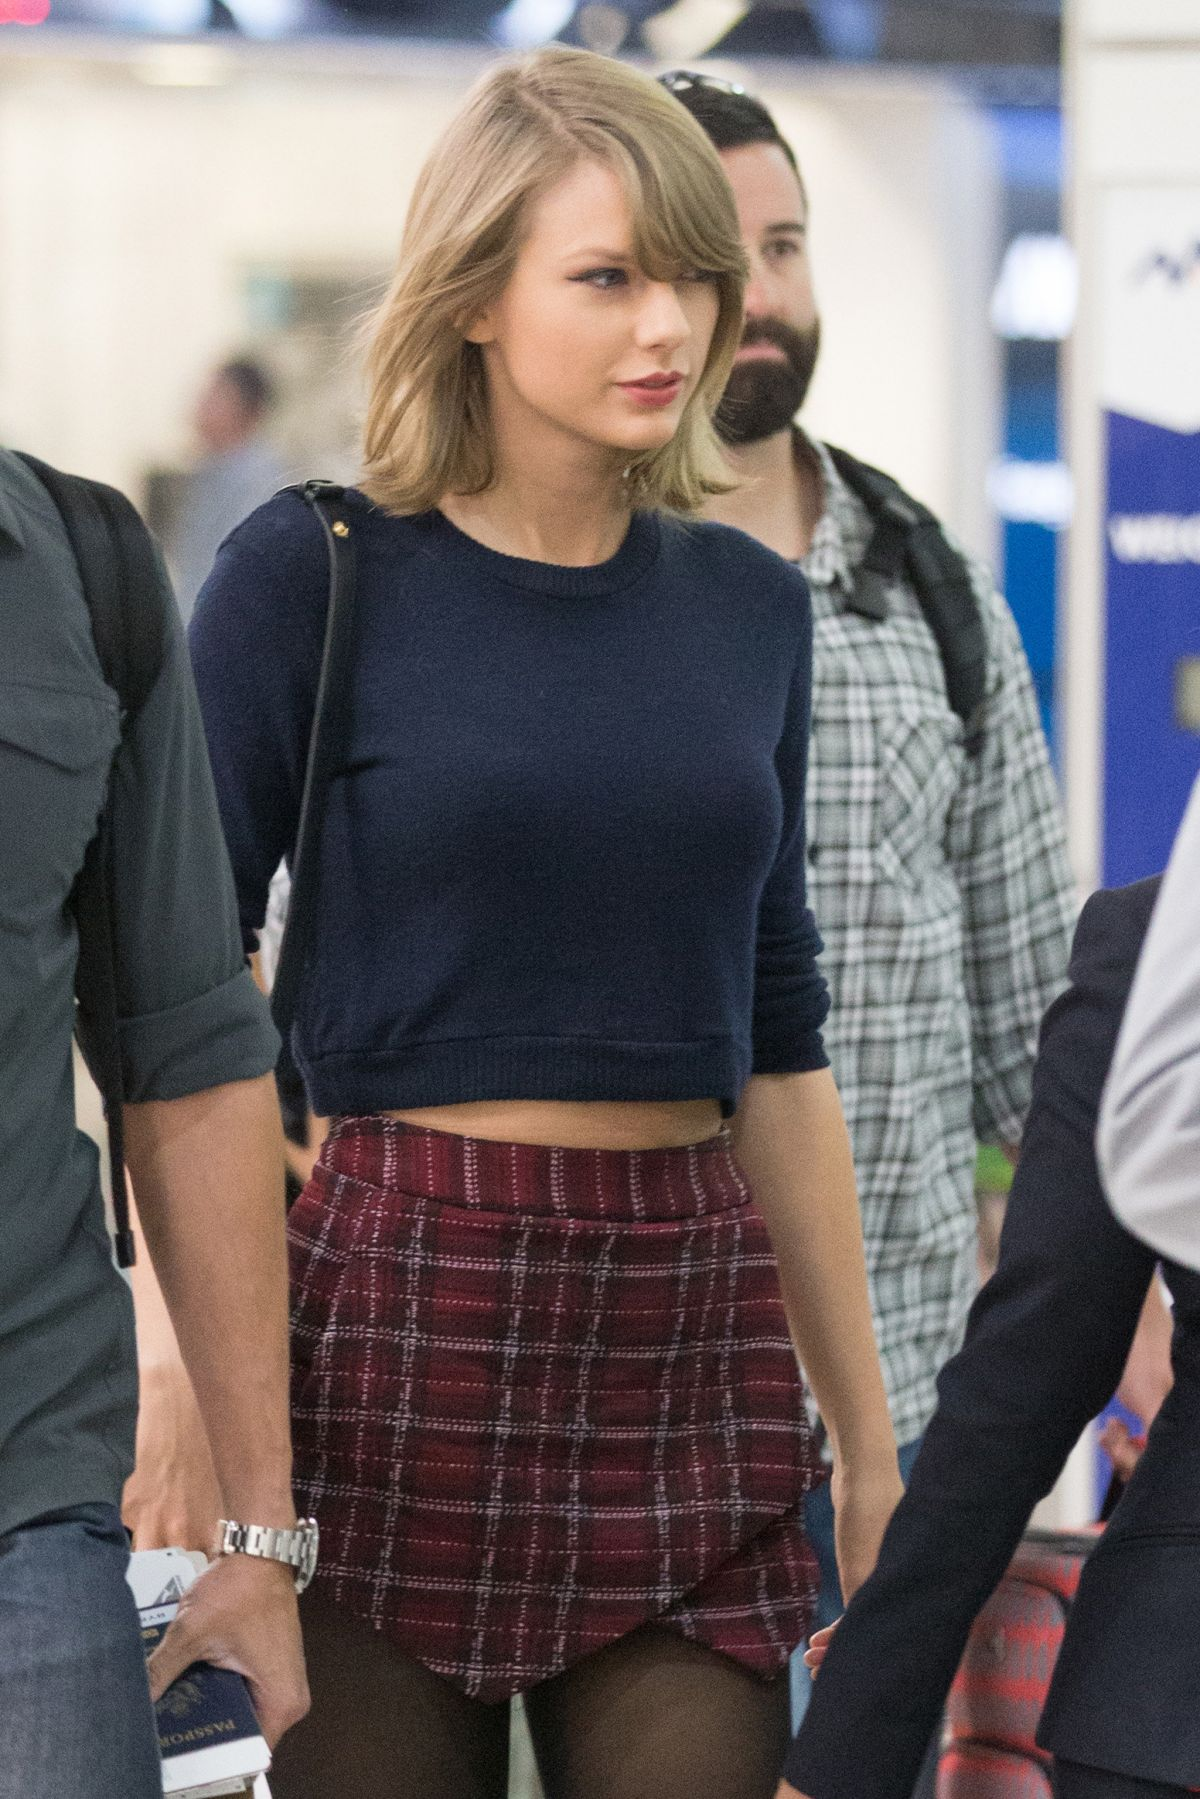 12. Taylor Swift 12. Taylor Swift new images